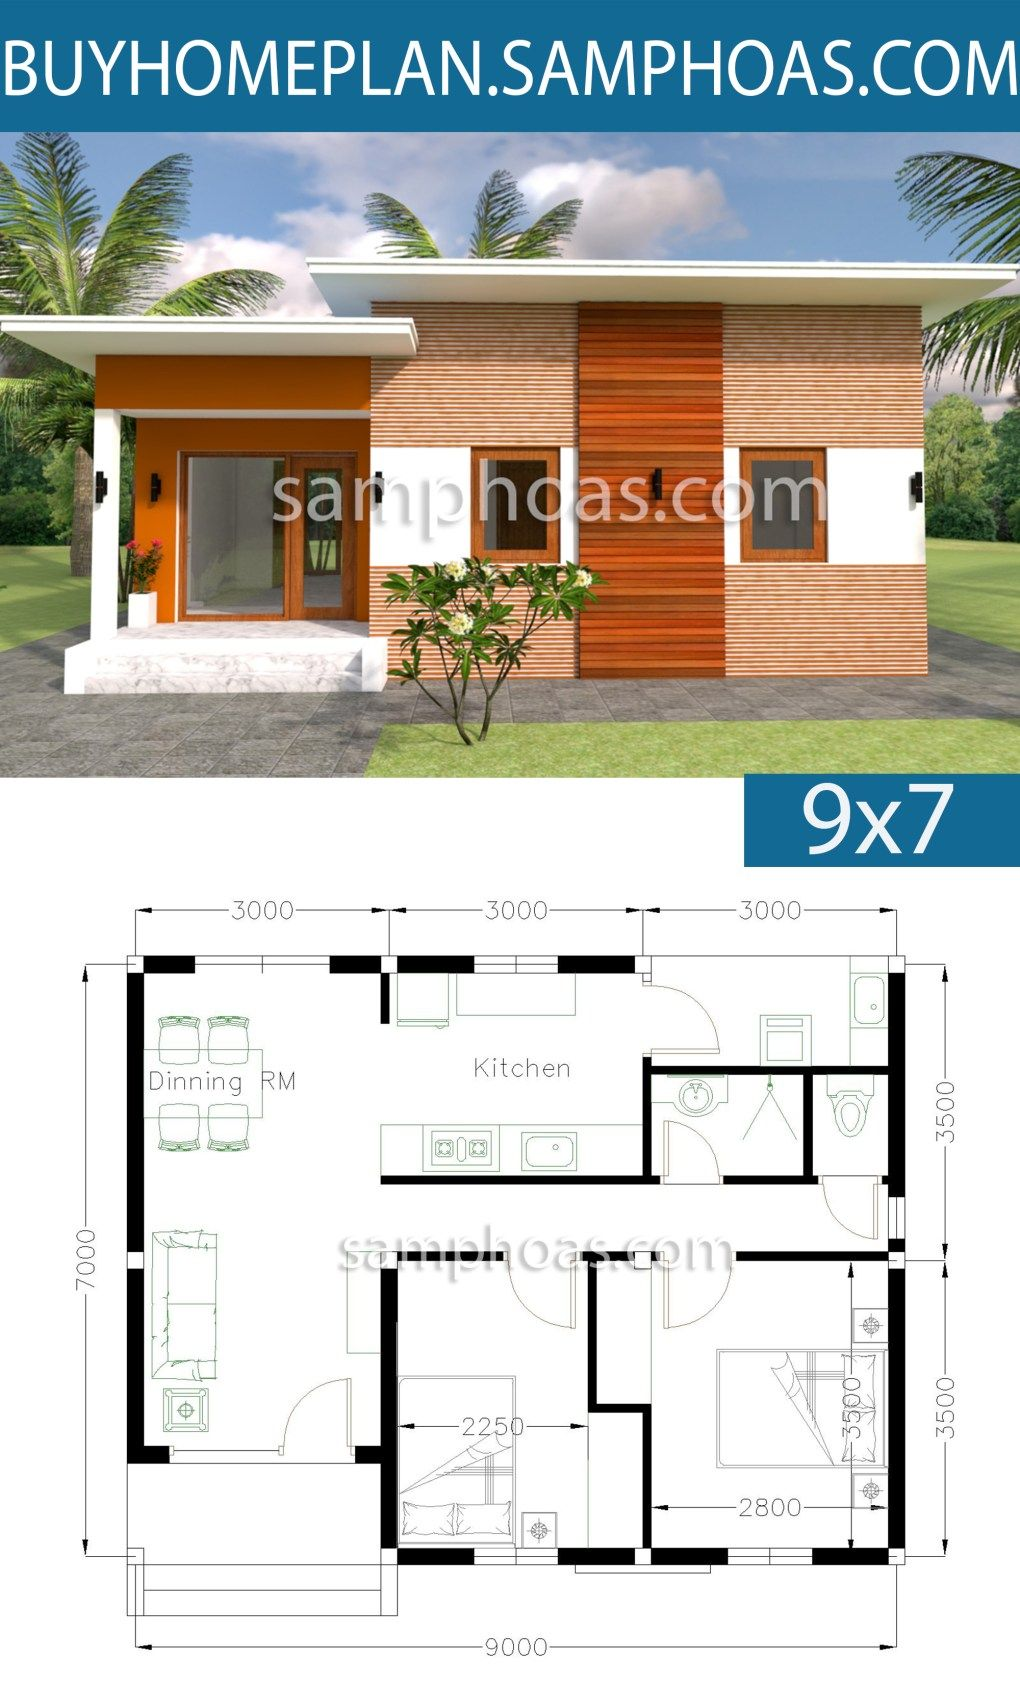 House Plans 9x7m With 2 Bedrooms Sam House Plans Small Modern House Plans House Layout Plans House Plans